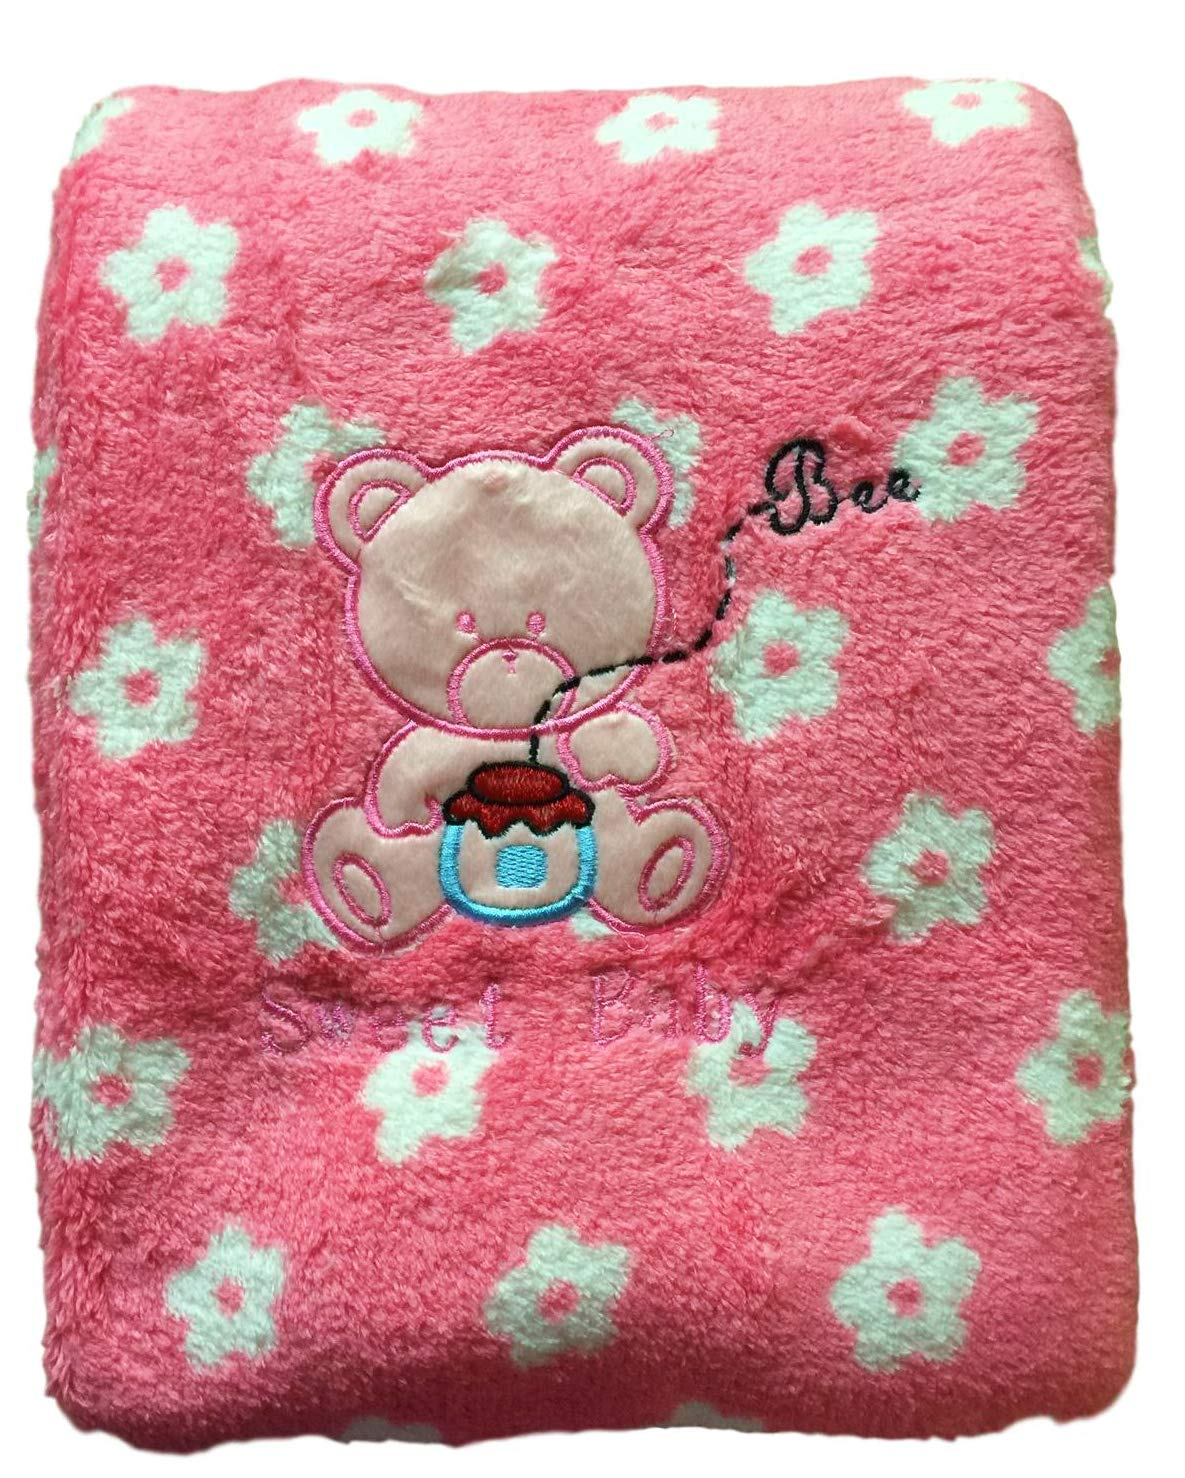 Multiple Designs and Themes Sherpa Backing Baby Blankets For Girls Anti-Pilling Warm and Cozy Teddy Extra Soft Micro Plush Fleece Blanket